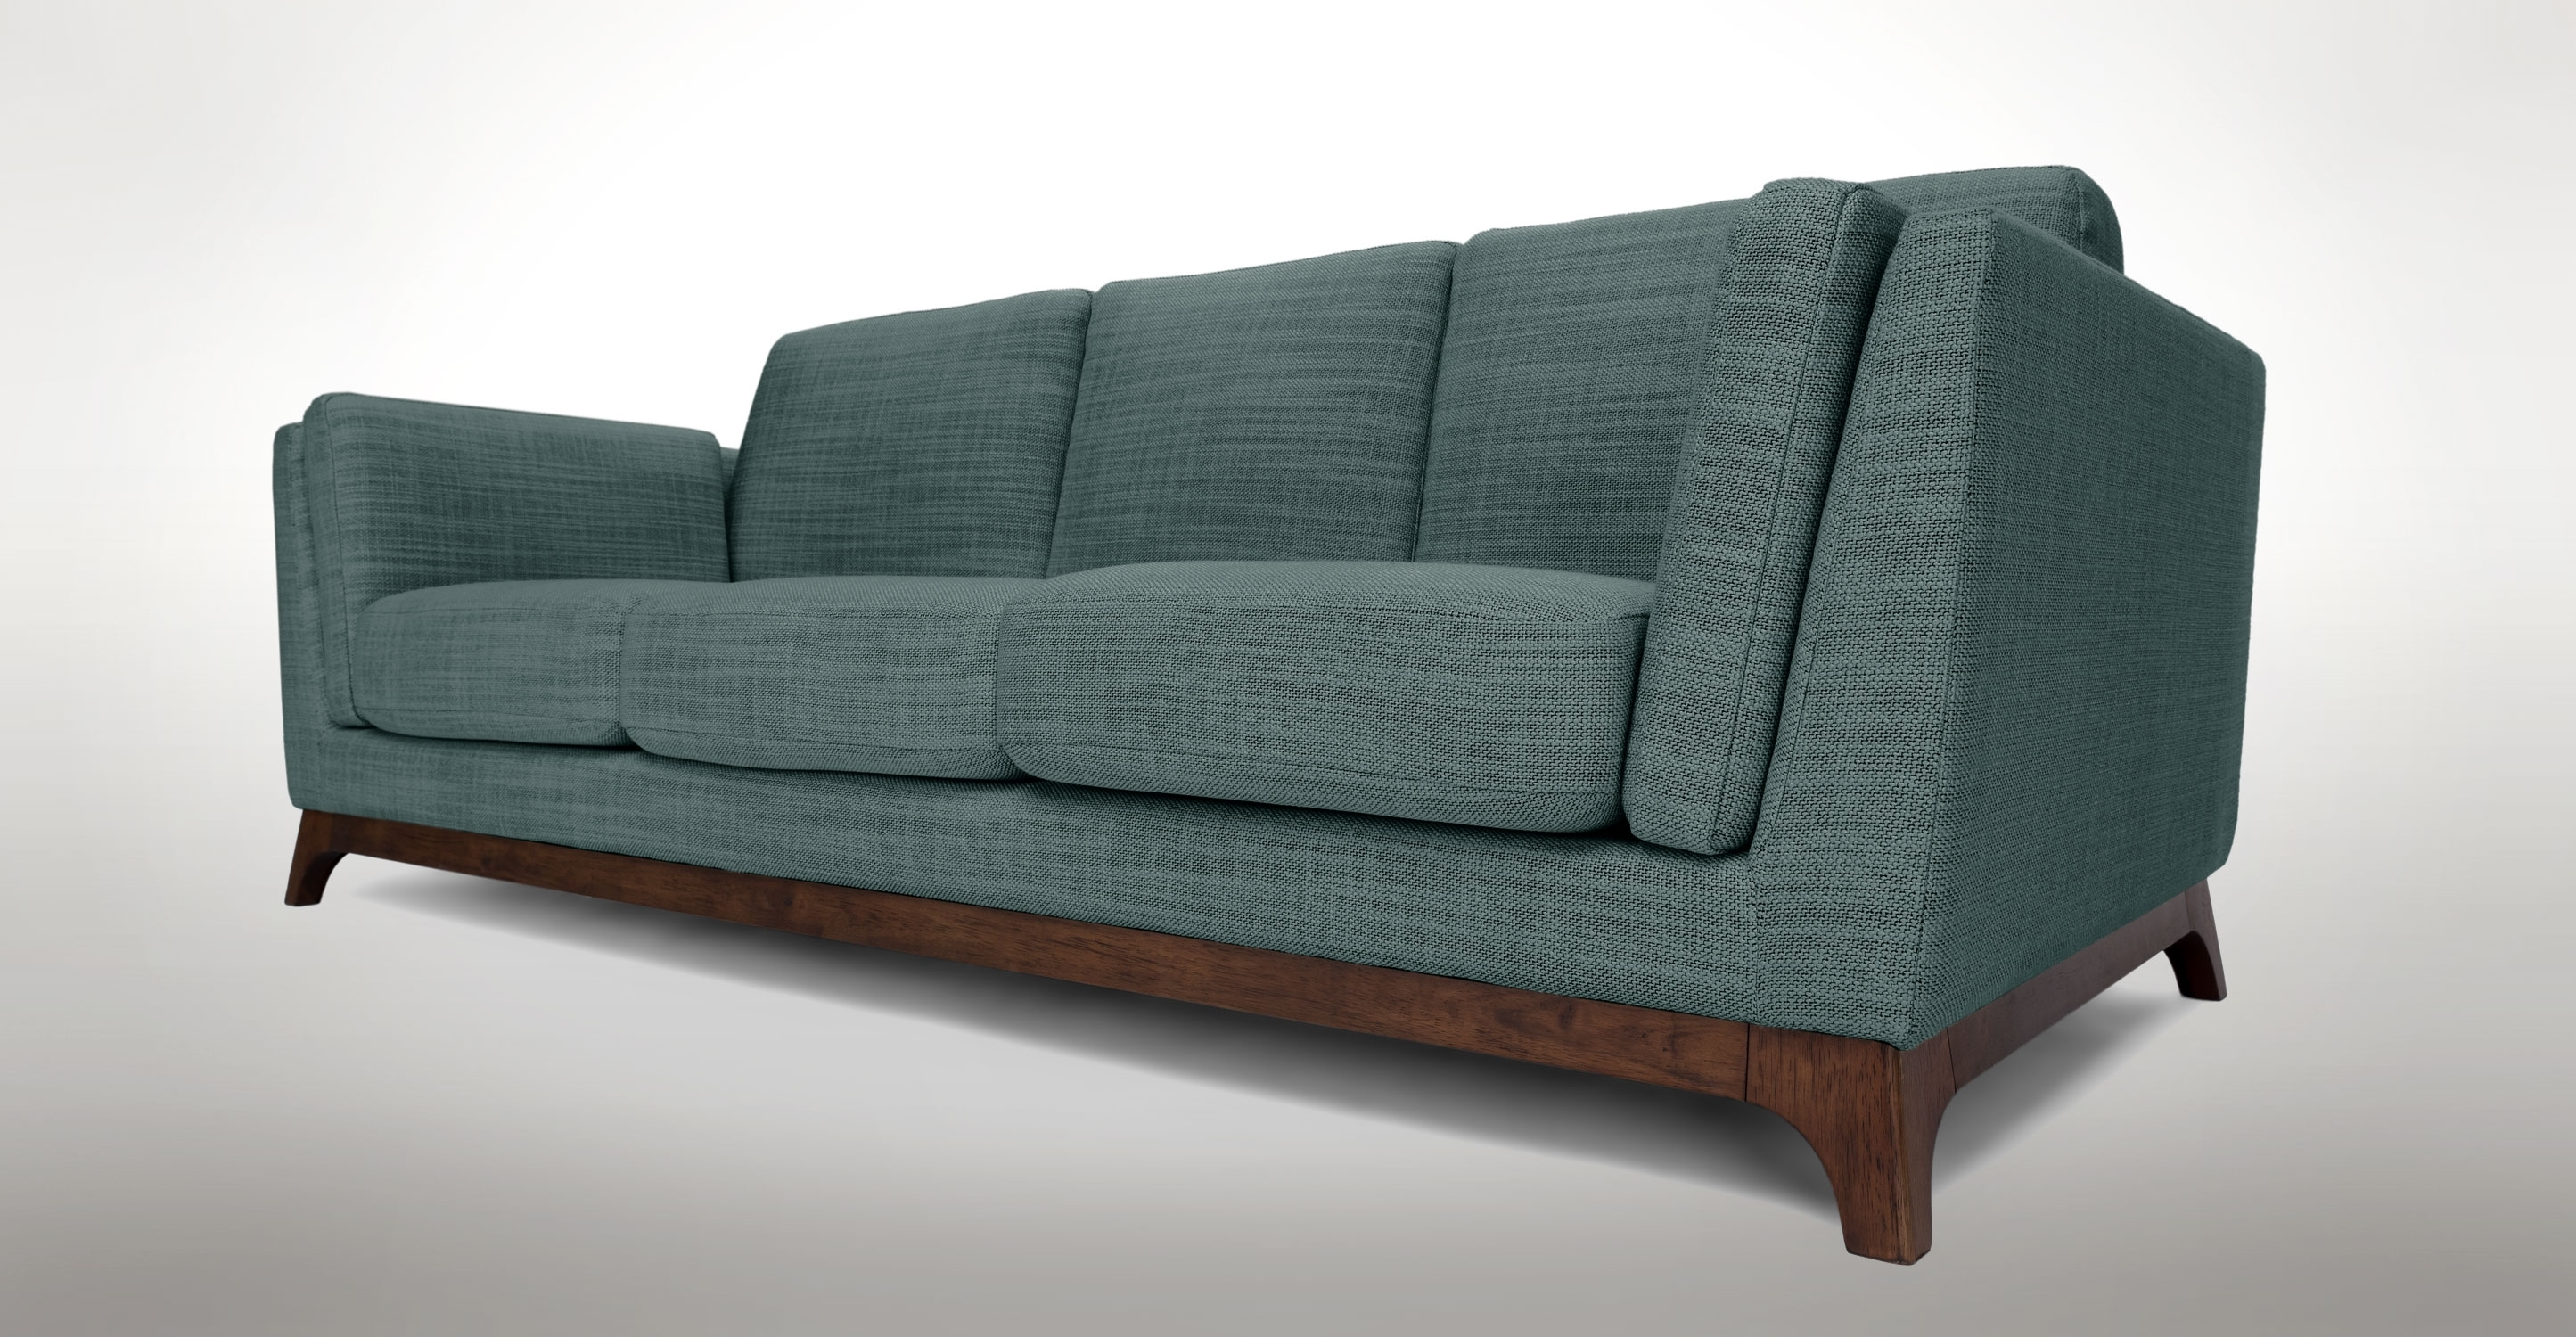 Blue Sofa 3 Seater With Solid Wood Legs | Article Ceni Modern With Aqua Sofas (Image 5 of 10)